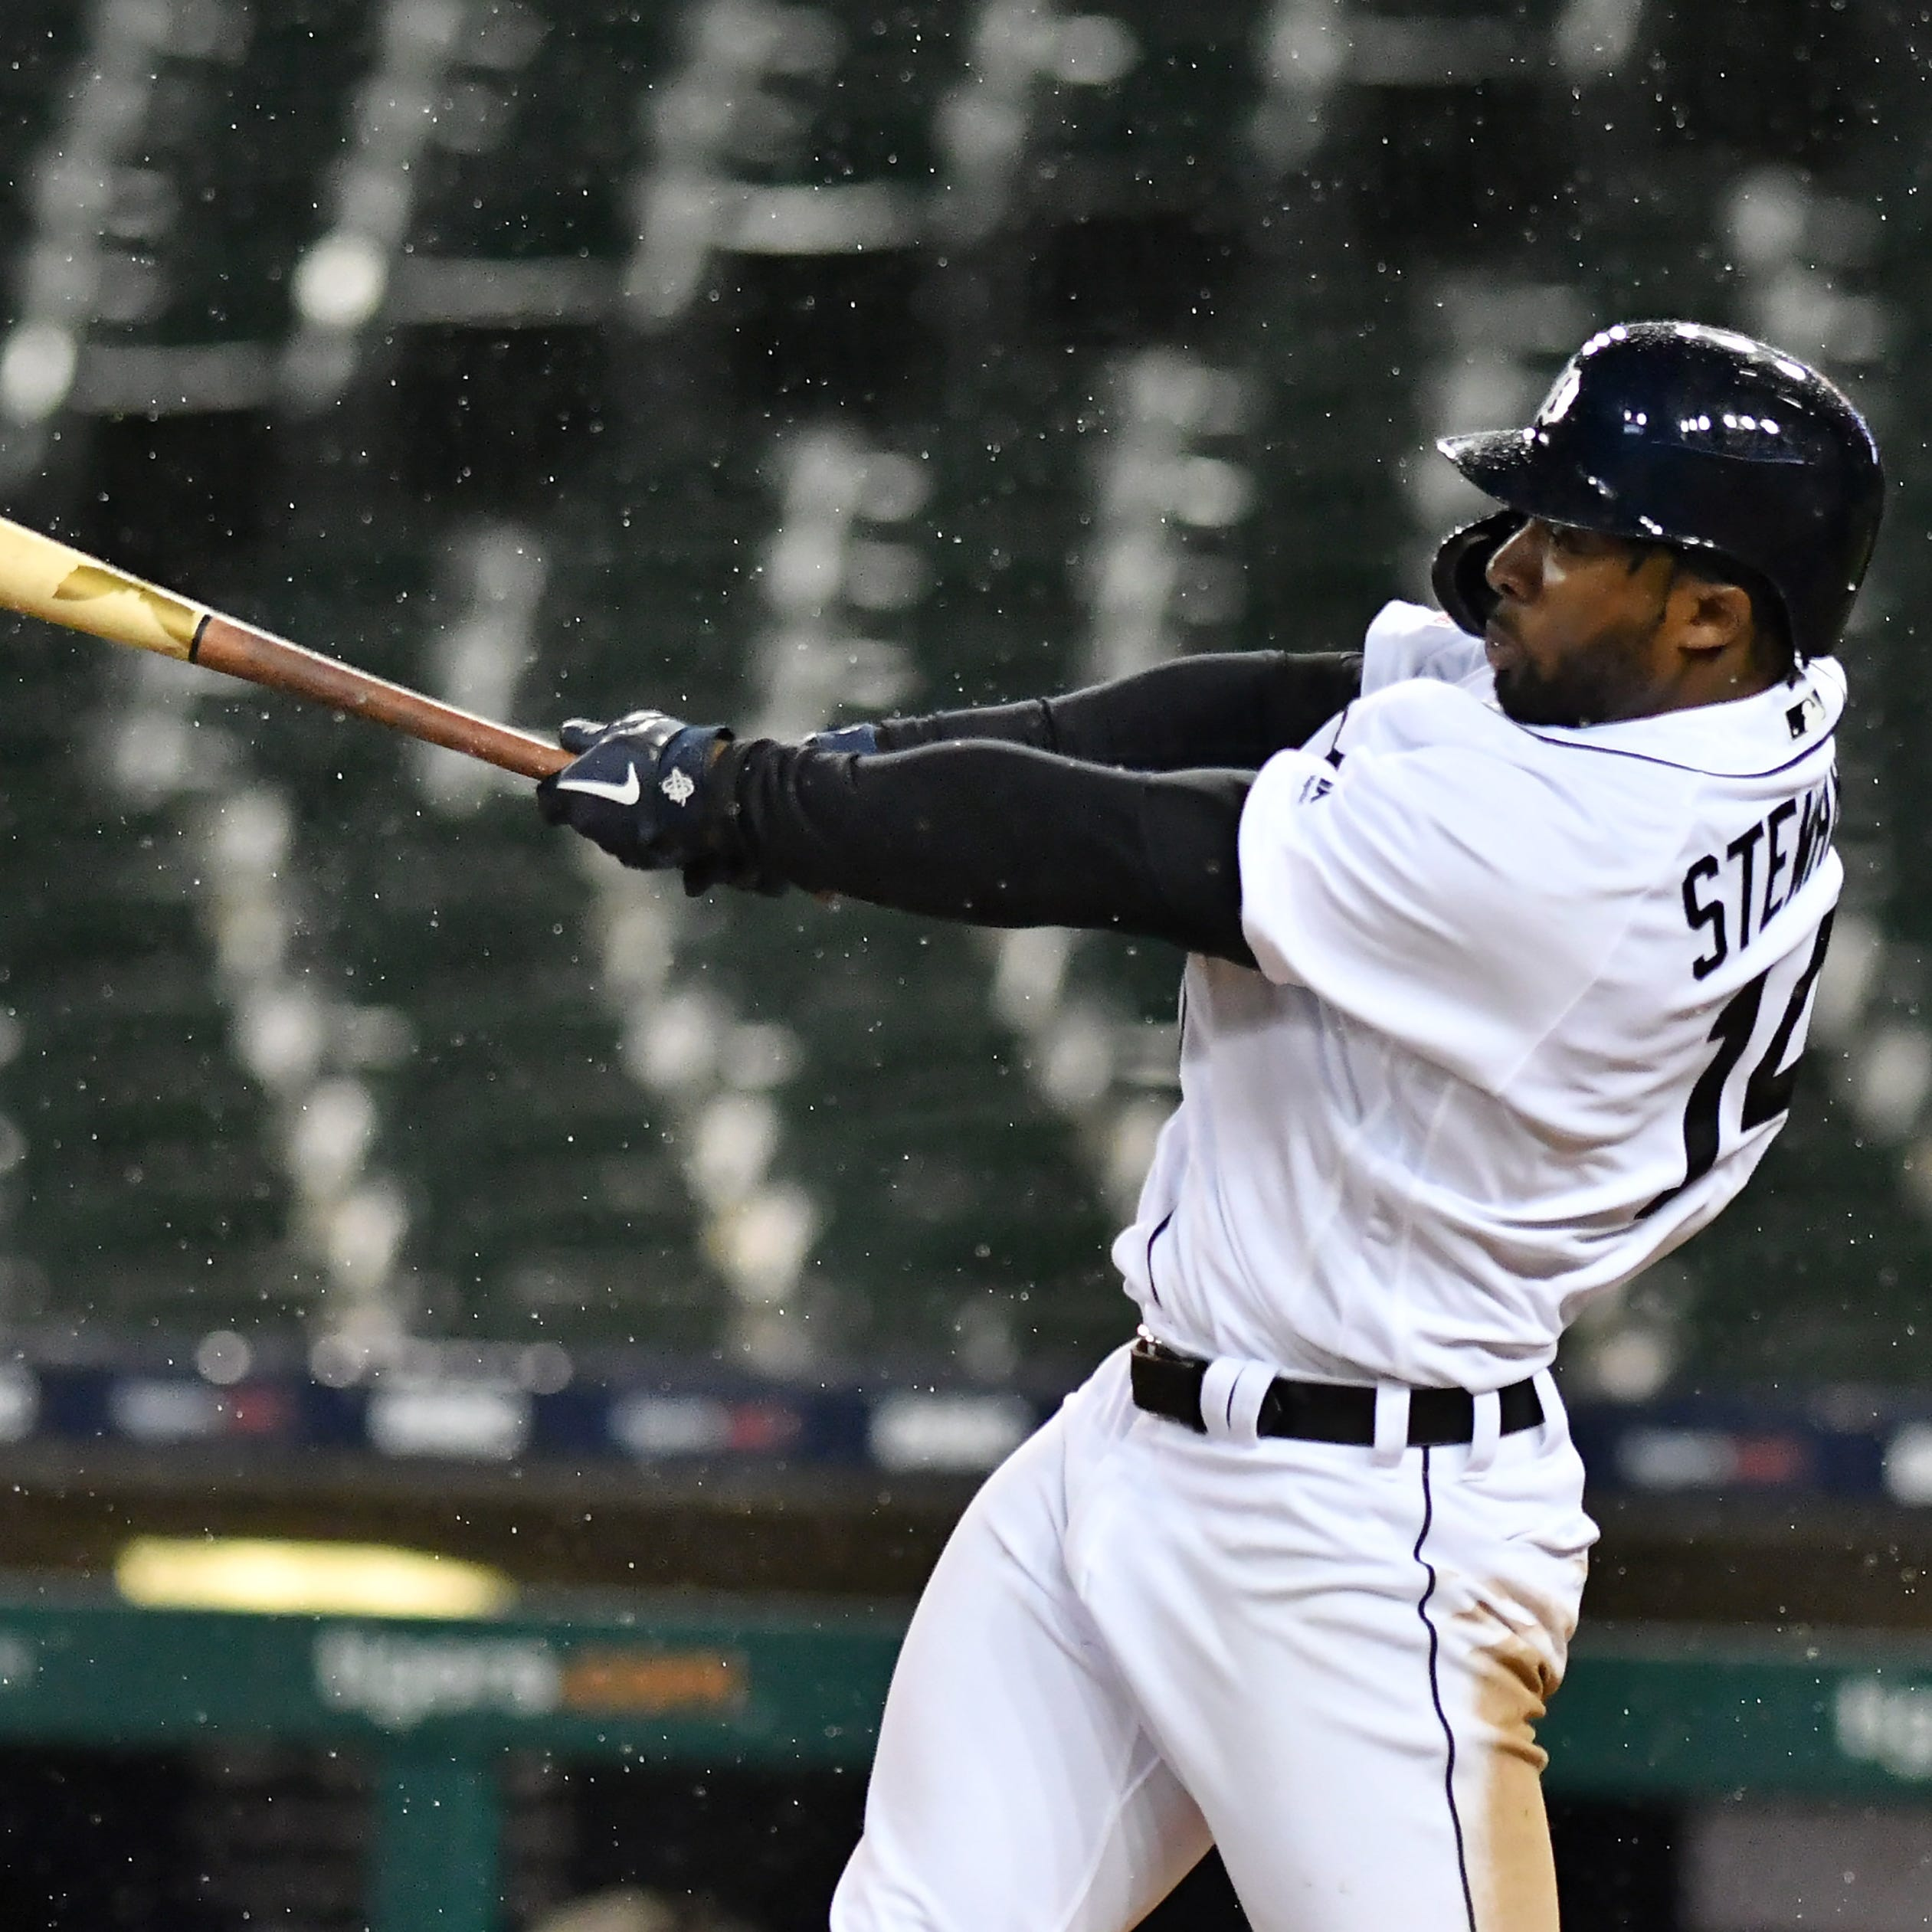 Tigers activate Christin Stewart, while Jordy Mercer heads to IL